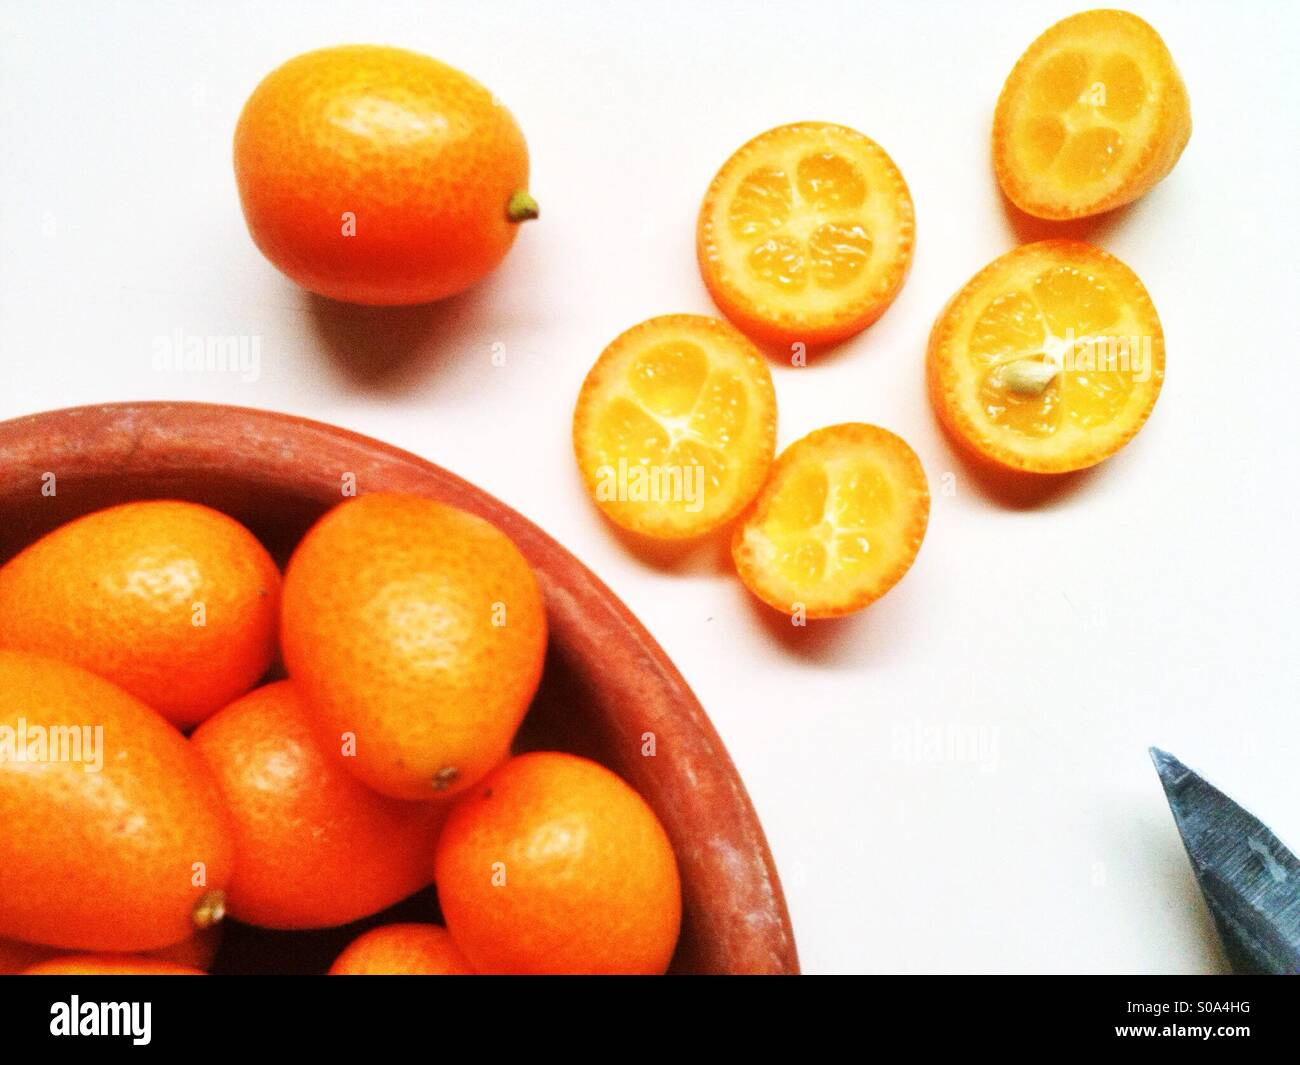 Sliced orange cumquats on a countertop - Stock Image